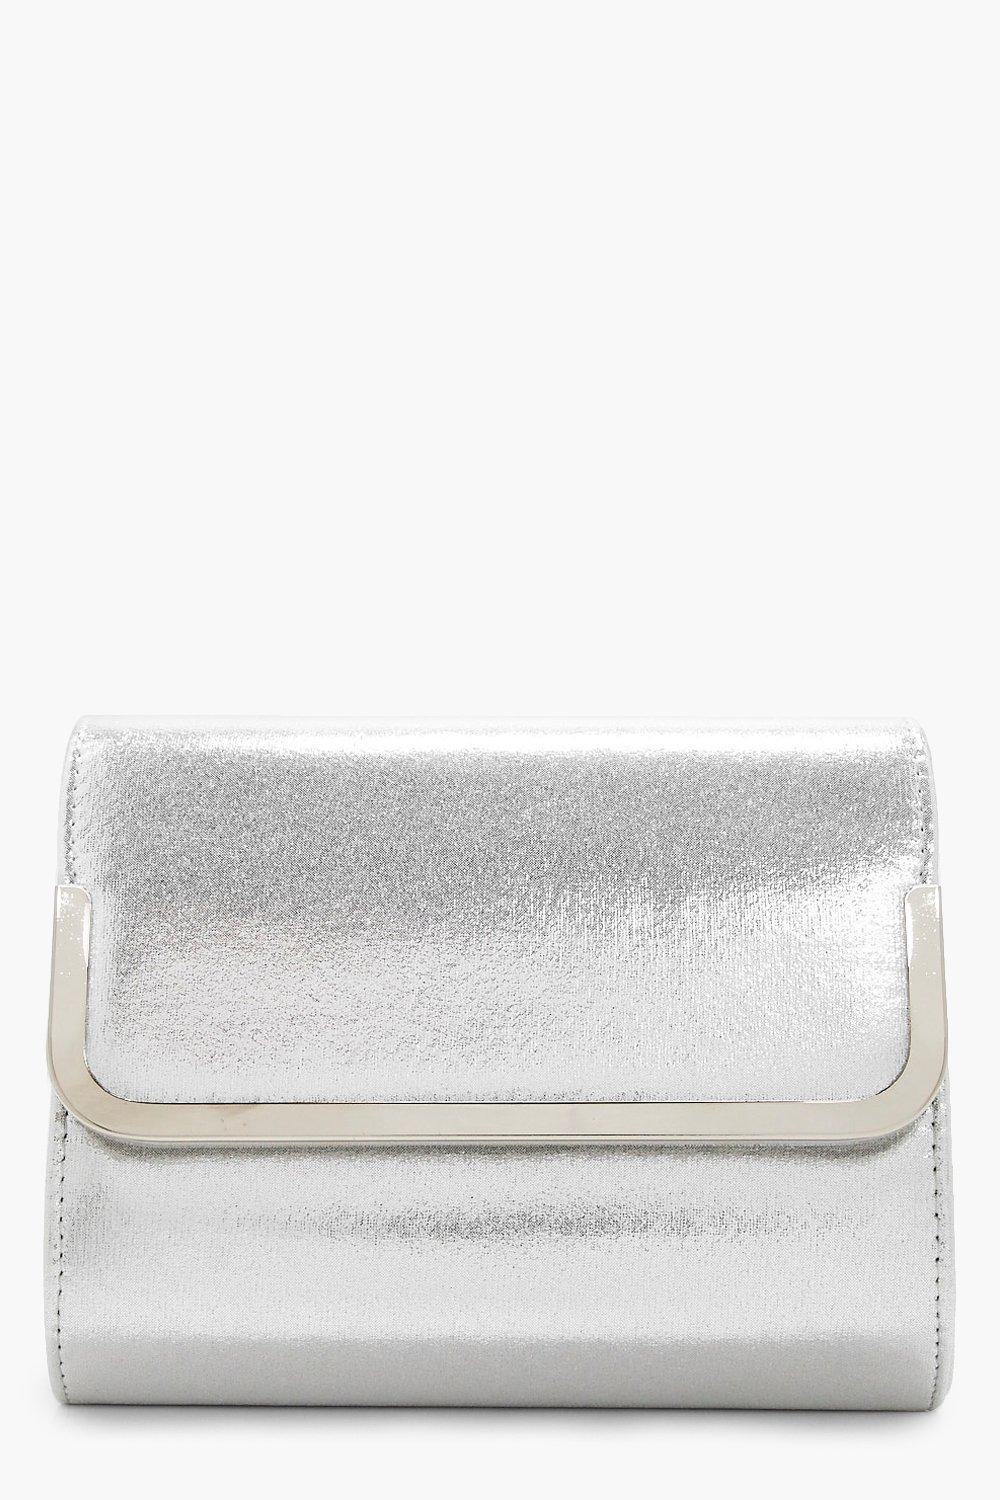 Metal Trim Glitter Fold Over Clutch - silver - Ang